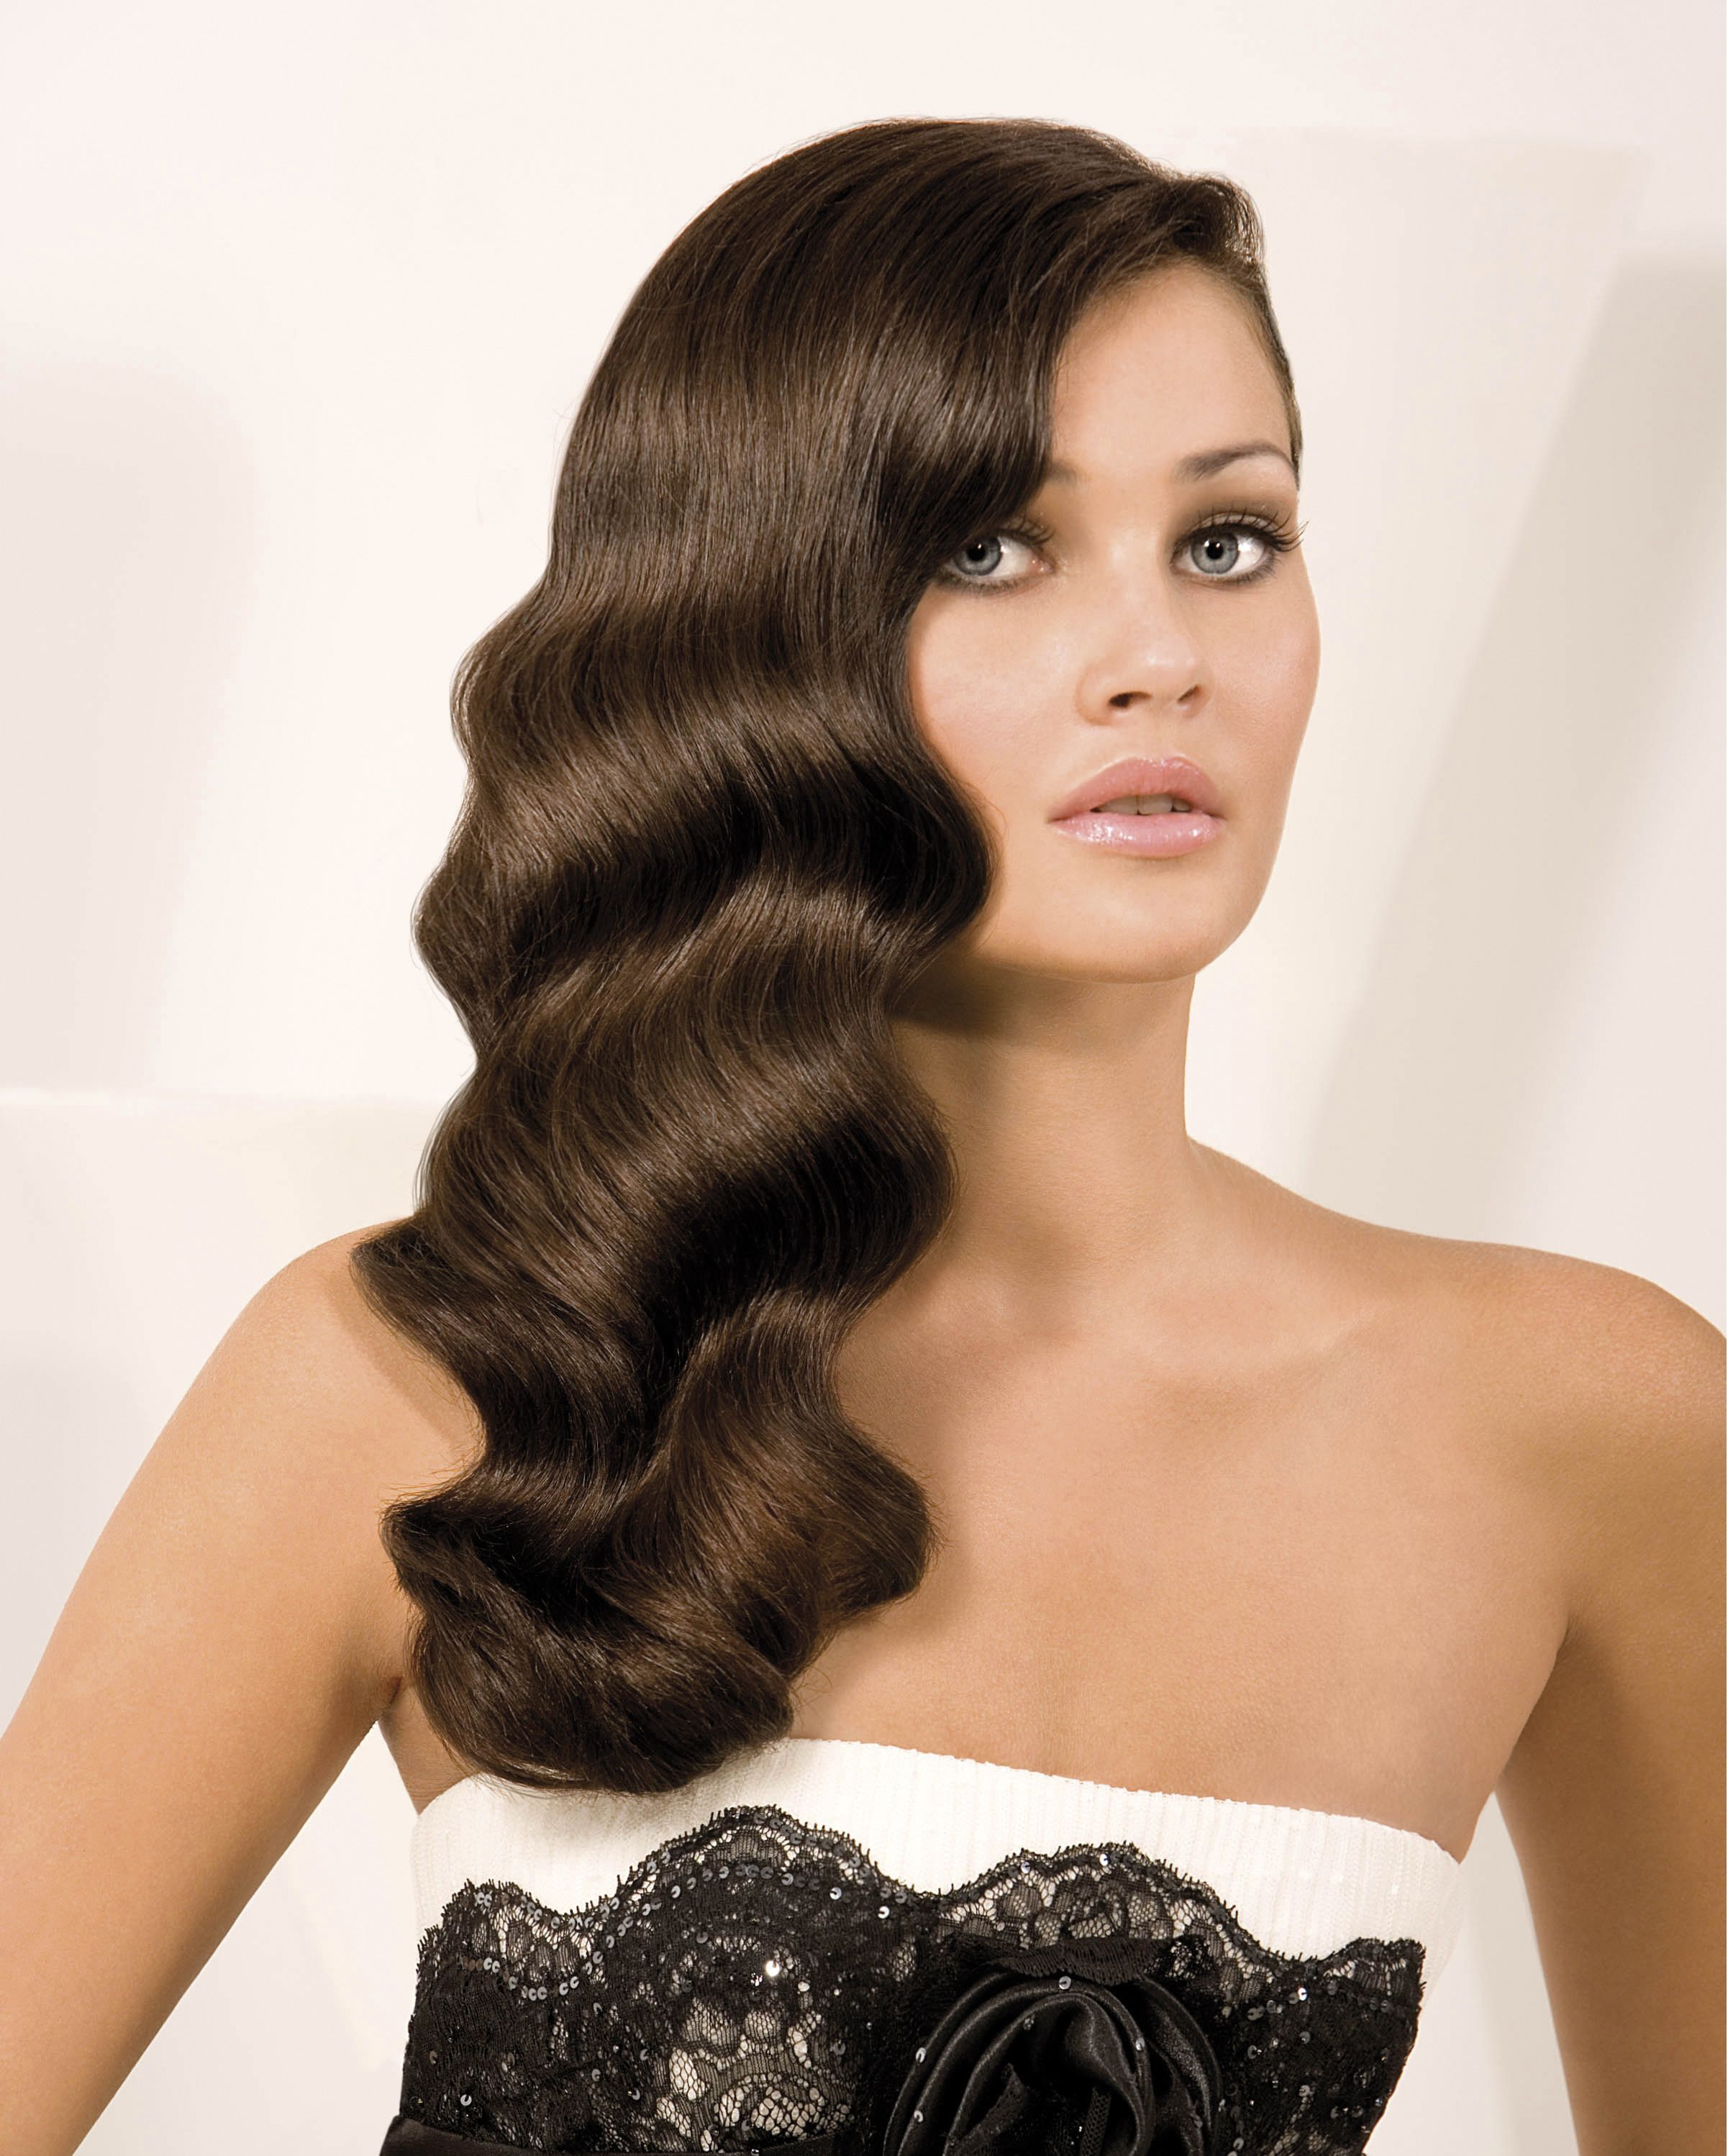 The Hair Vintage Hairstyles For Long Hair Long Hair Styles Prom Hairstyles For Long Hair